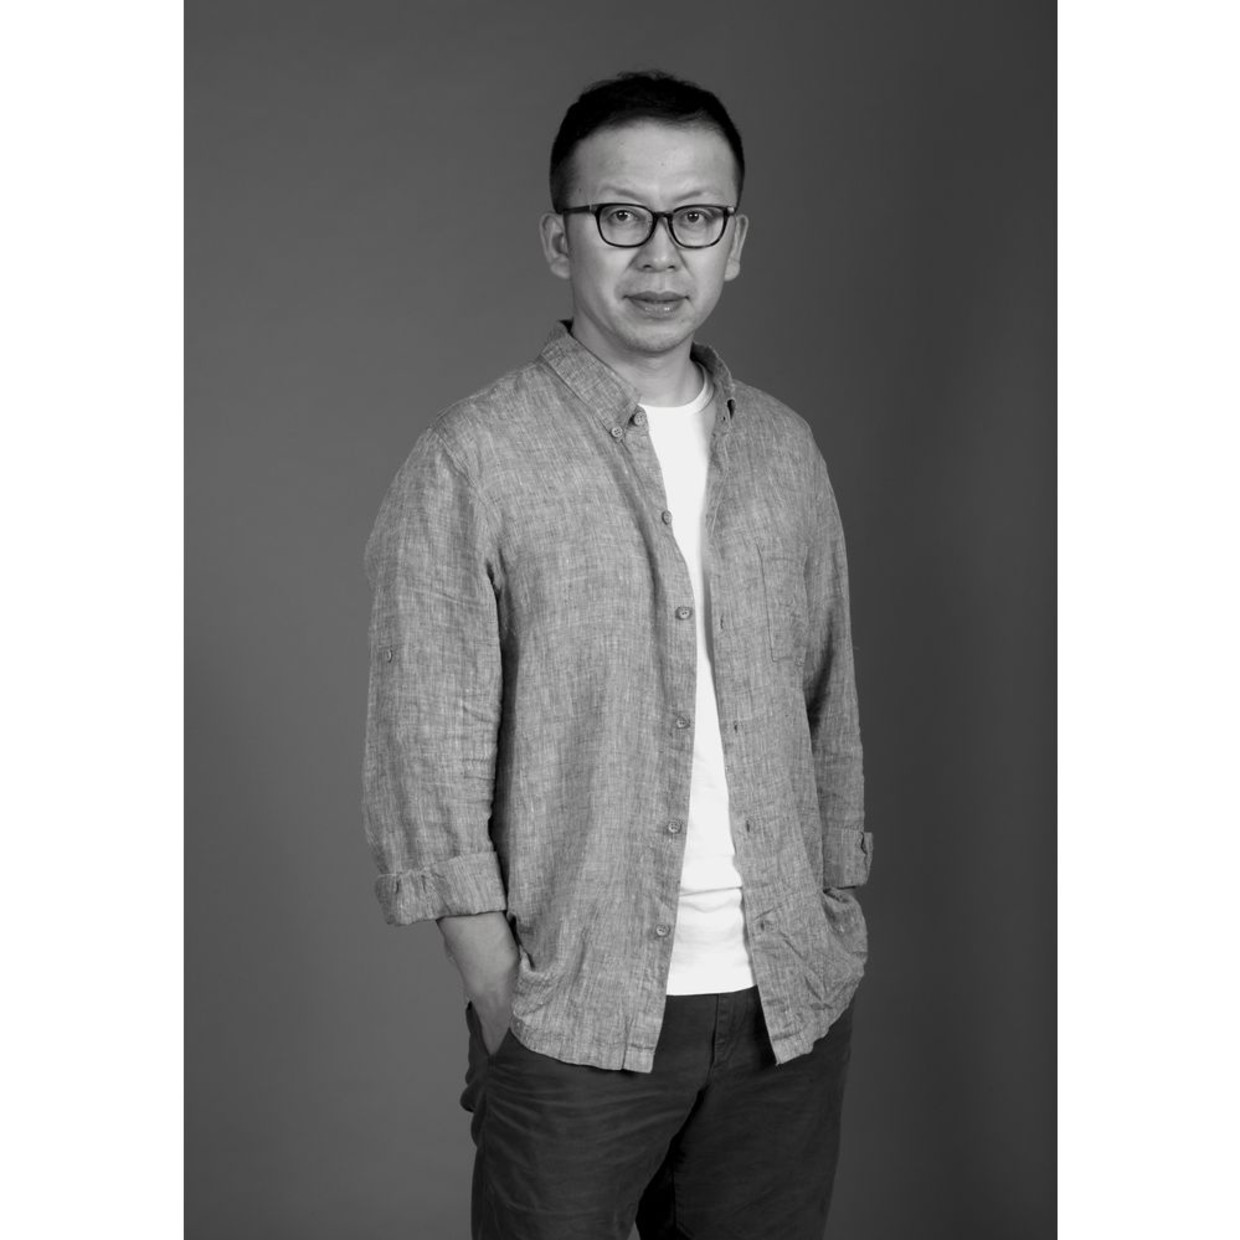 Ao Guoxing Graduated from the Photography Department of LuXun Academy of Fine Arts in 2002, Ao Guoxing is now a...